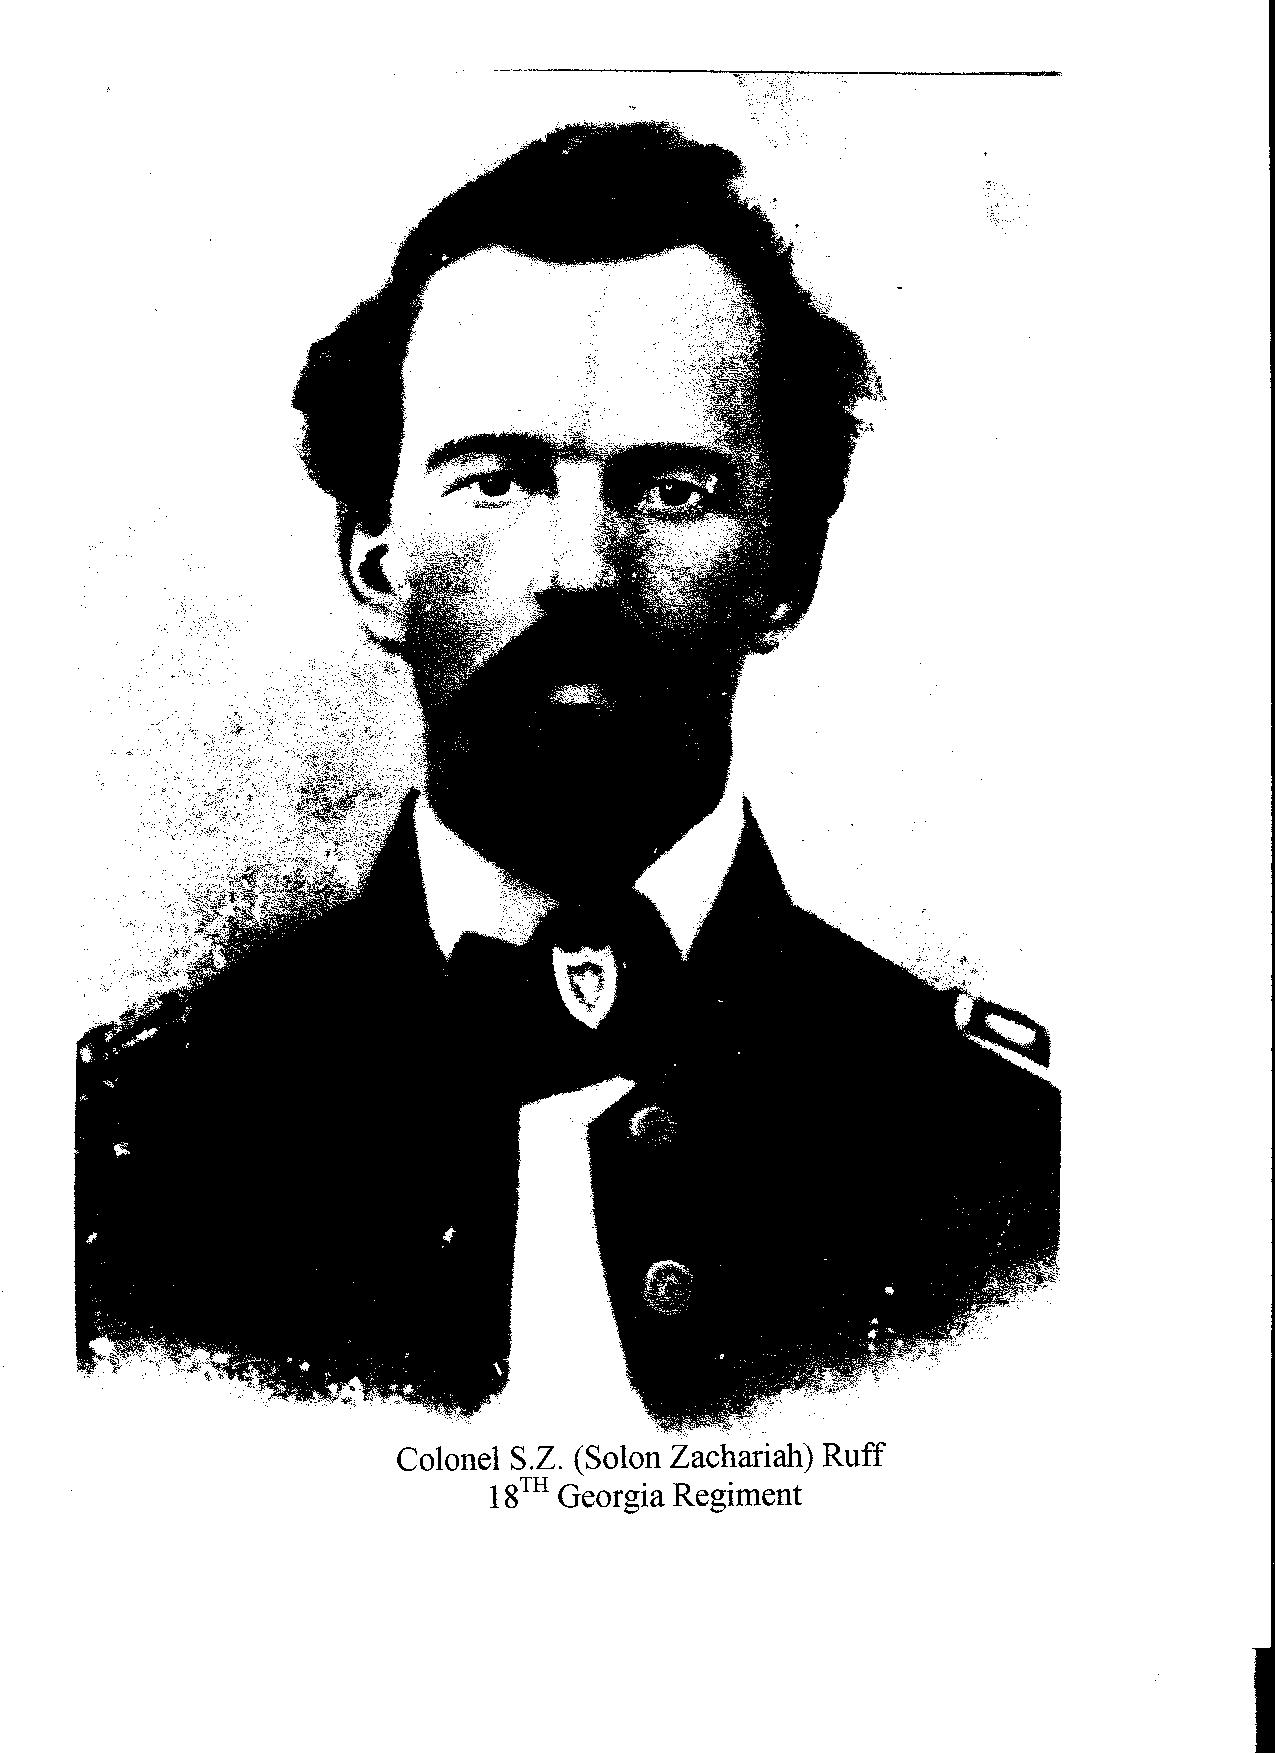 navasota black single men Just 24, frank hamer stepped down from the texas rangers to serve the city of navasota as marshal he brought a revolutionary new standard of race equality with him.